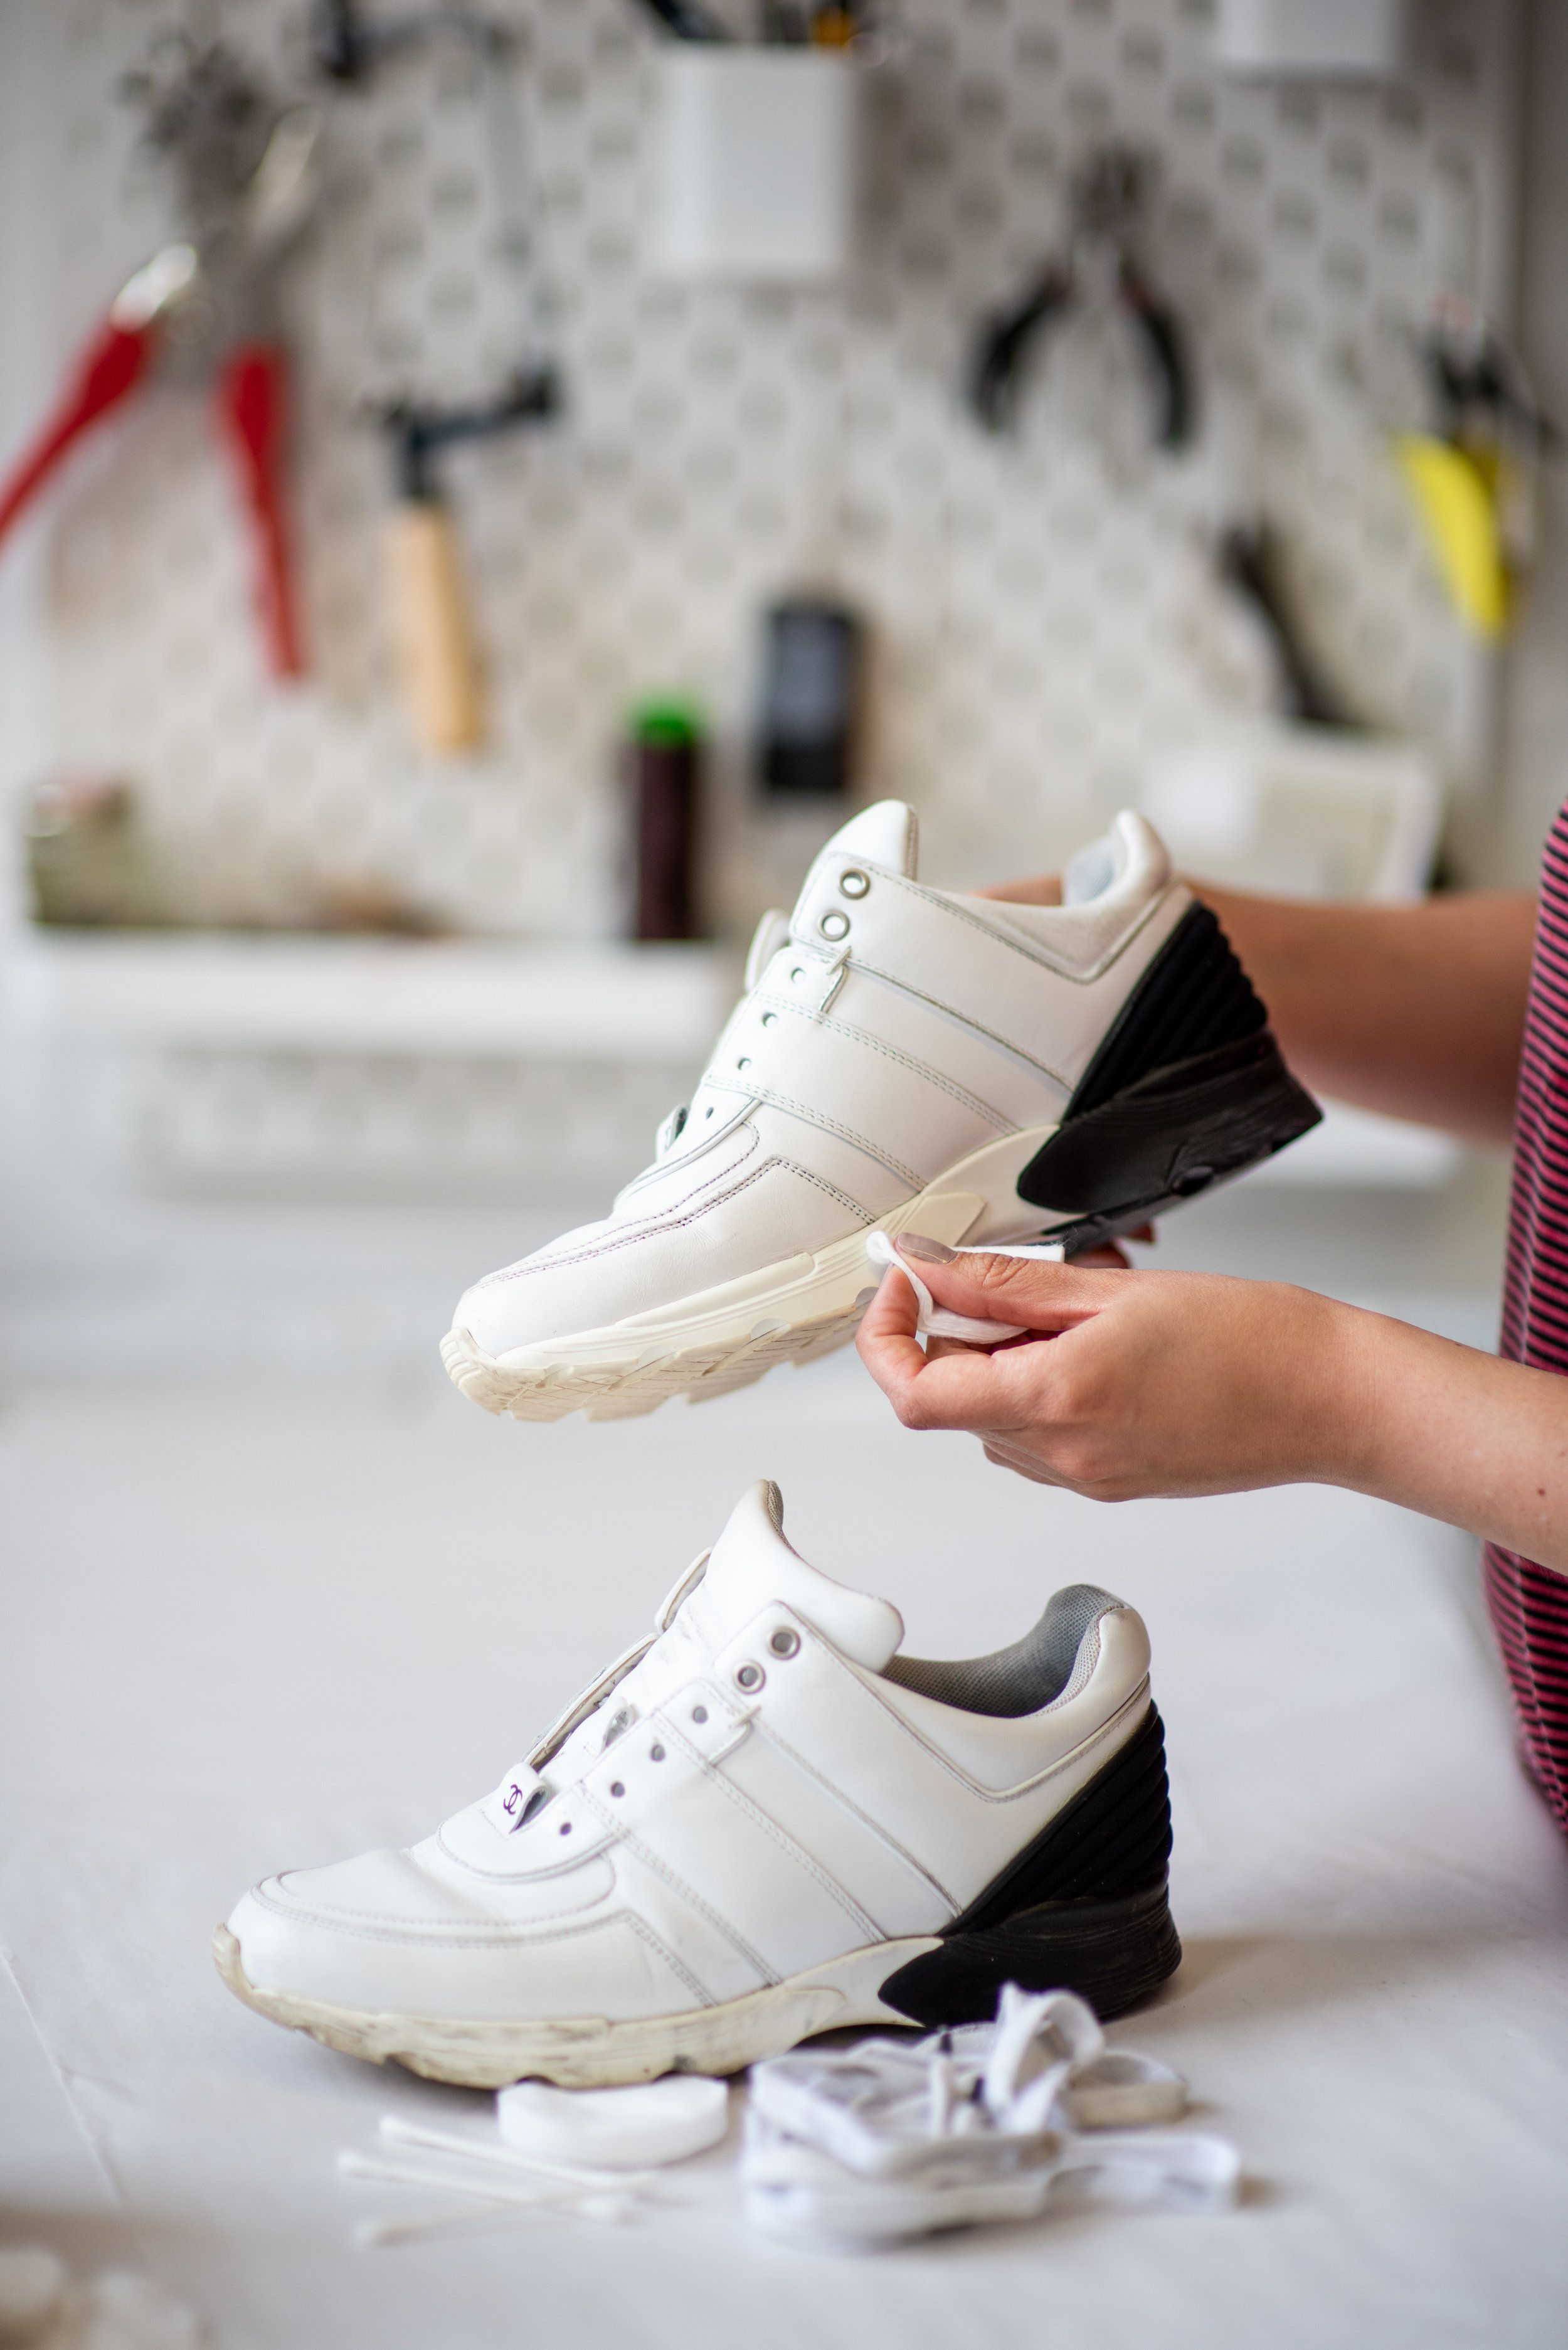 Cleaning Chanel sneakers at The Restory atelier